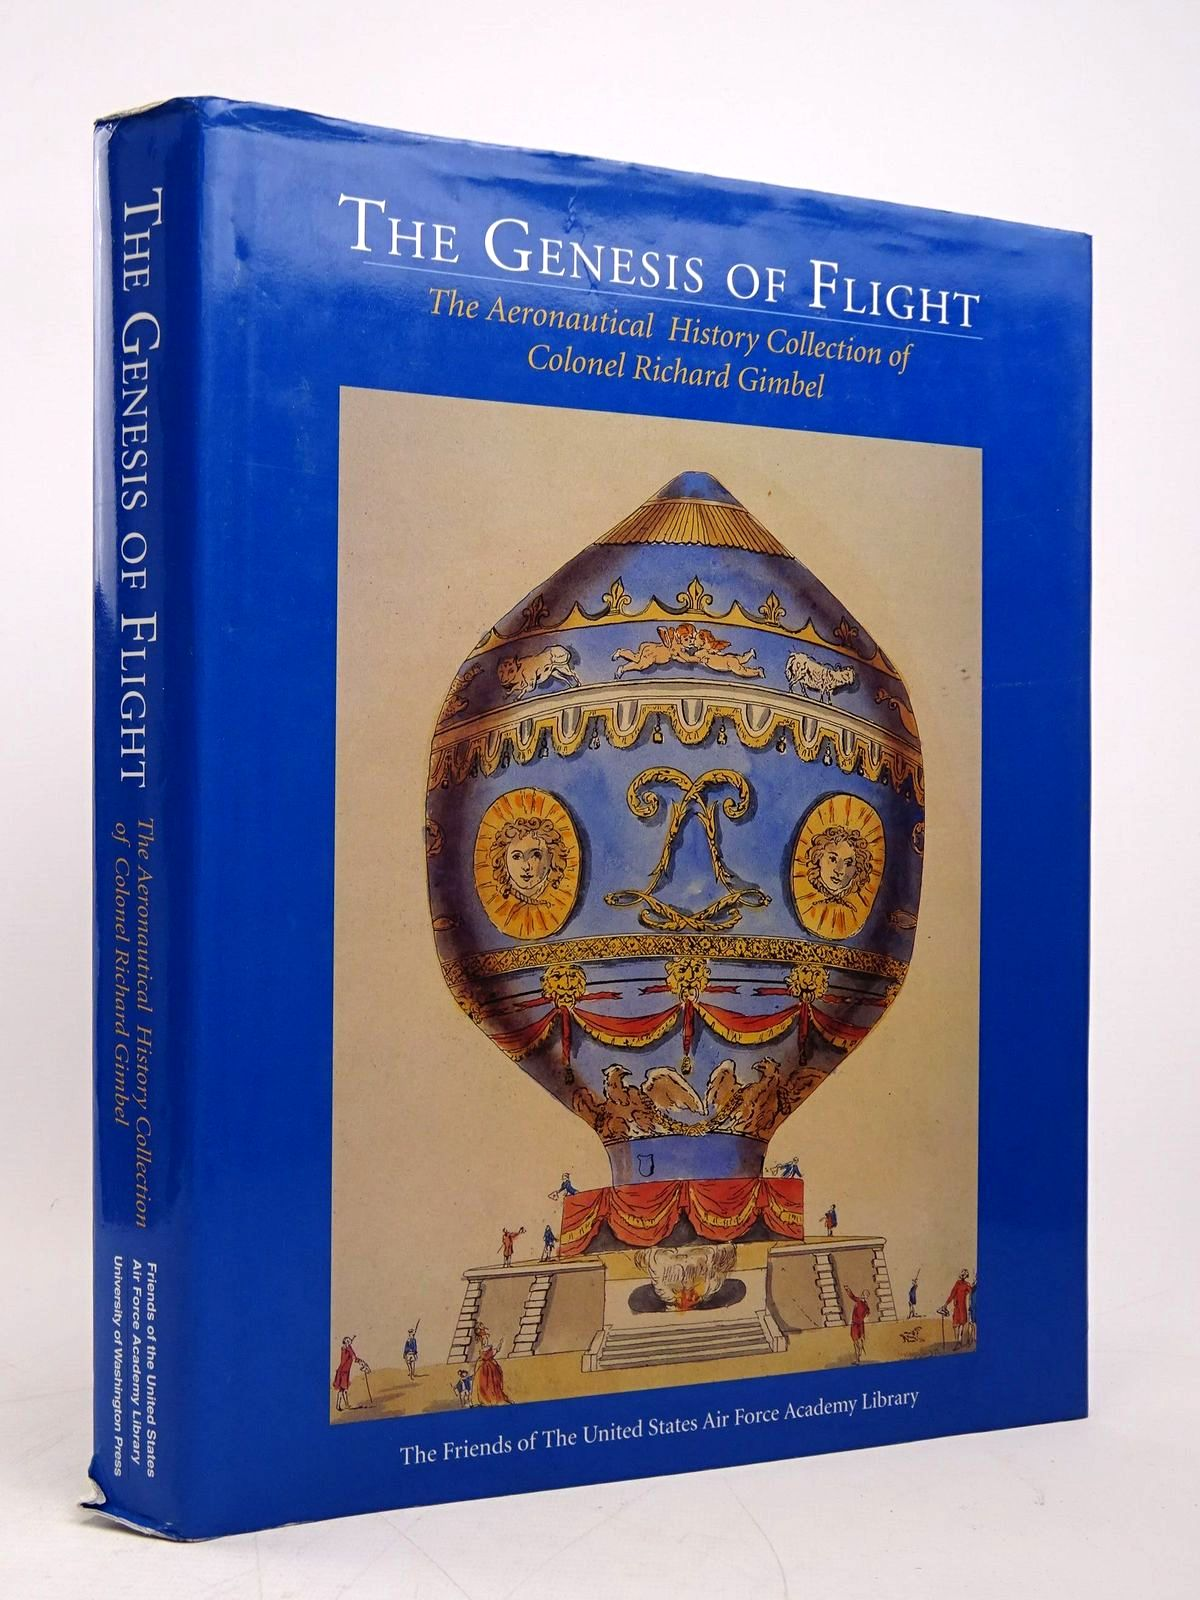 Photo of THE GENESIS OF FLIGHT published by University of Washington Press (STOCK CODE: 1817988)  for sale by Stella & Rose's Books